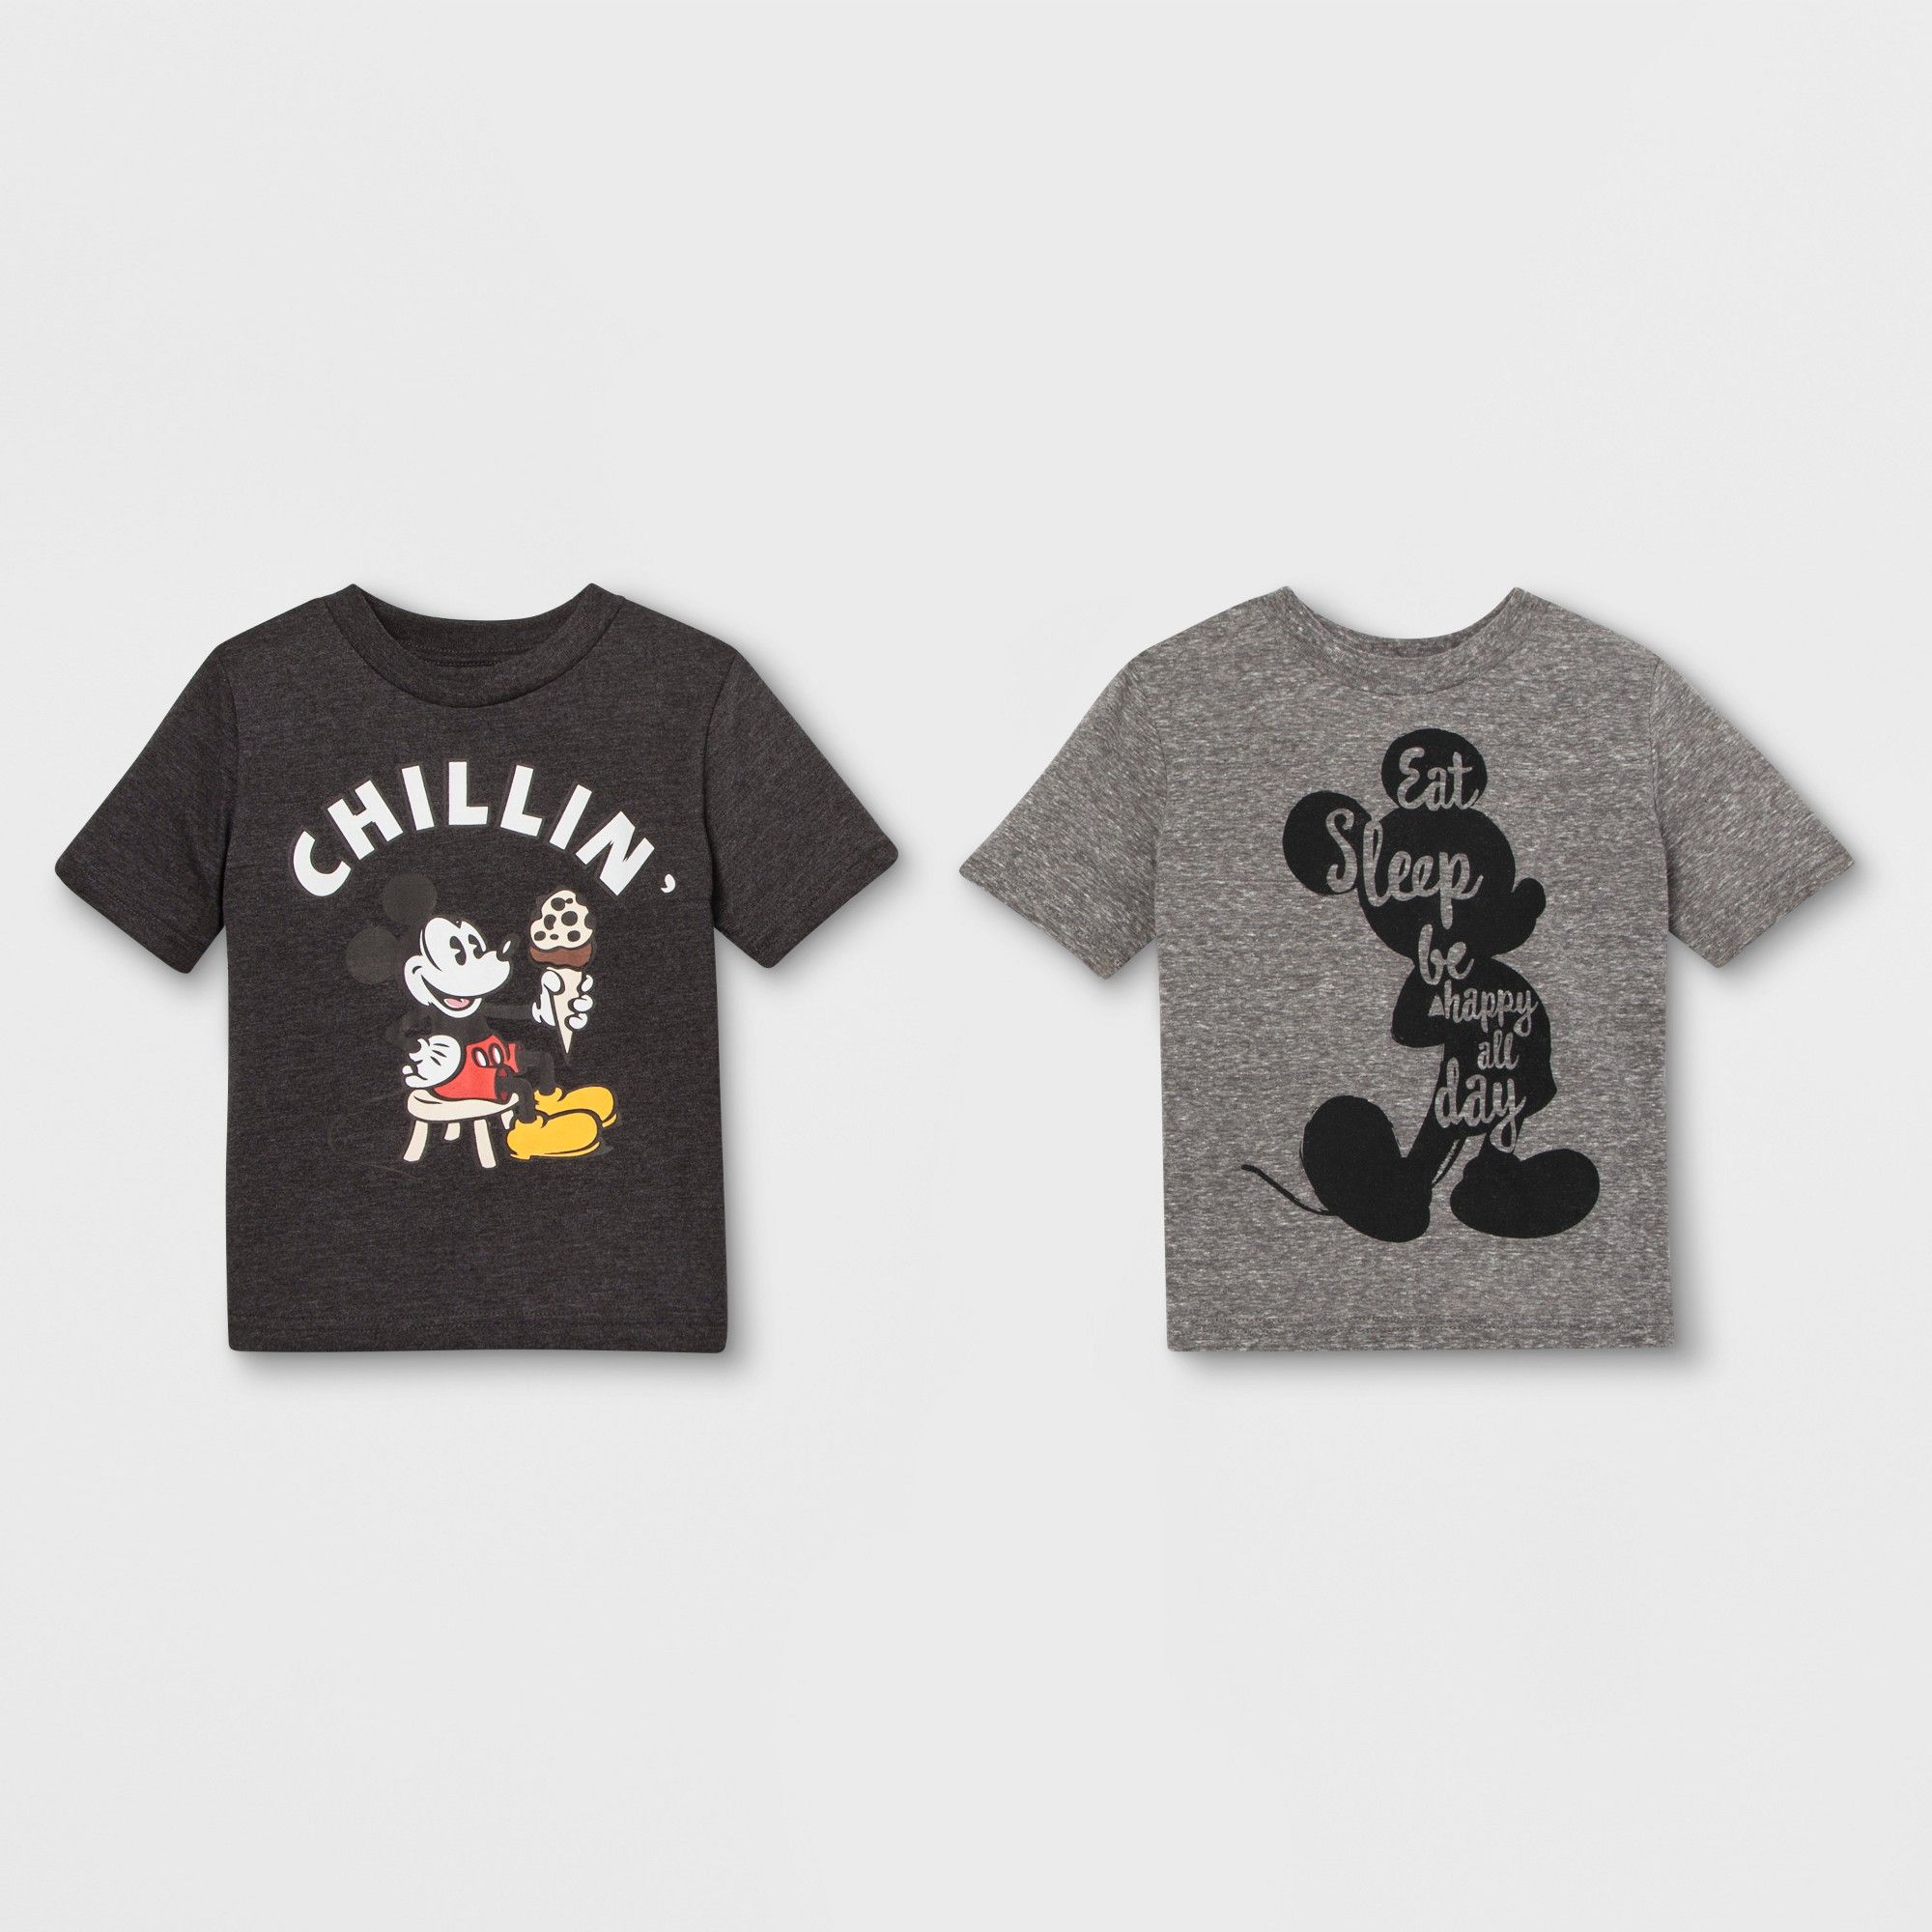 786cd0bd Toddler Boys' 2pk Disney Mickey Mouse & Friends Mickey Mouse Short Sleeve T- Shirts - Gray 2T, Multicolored